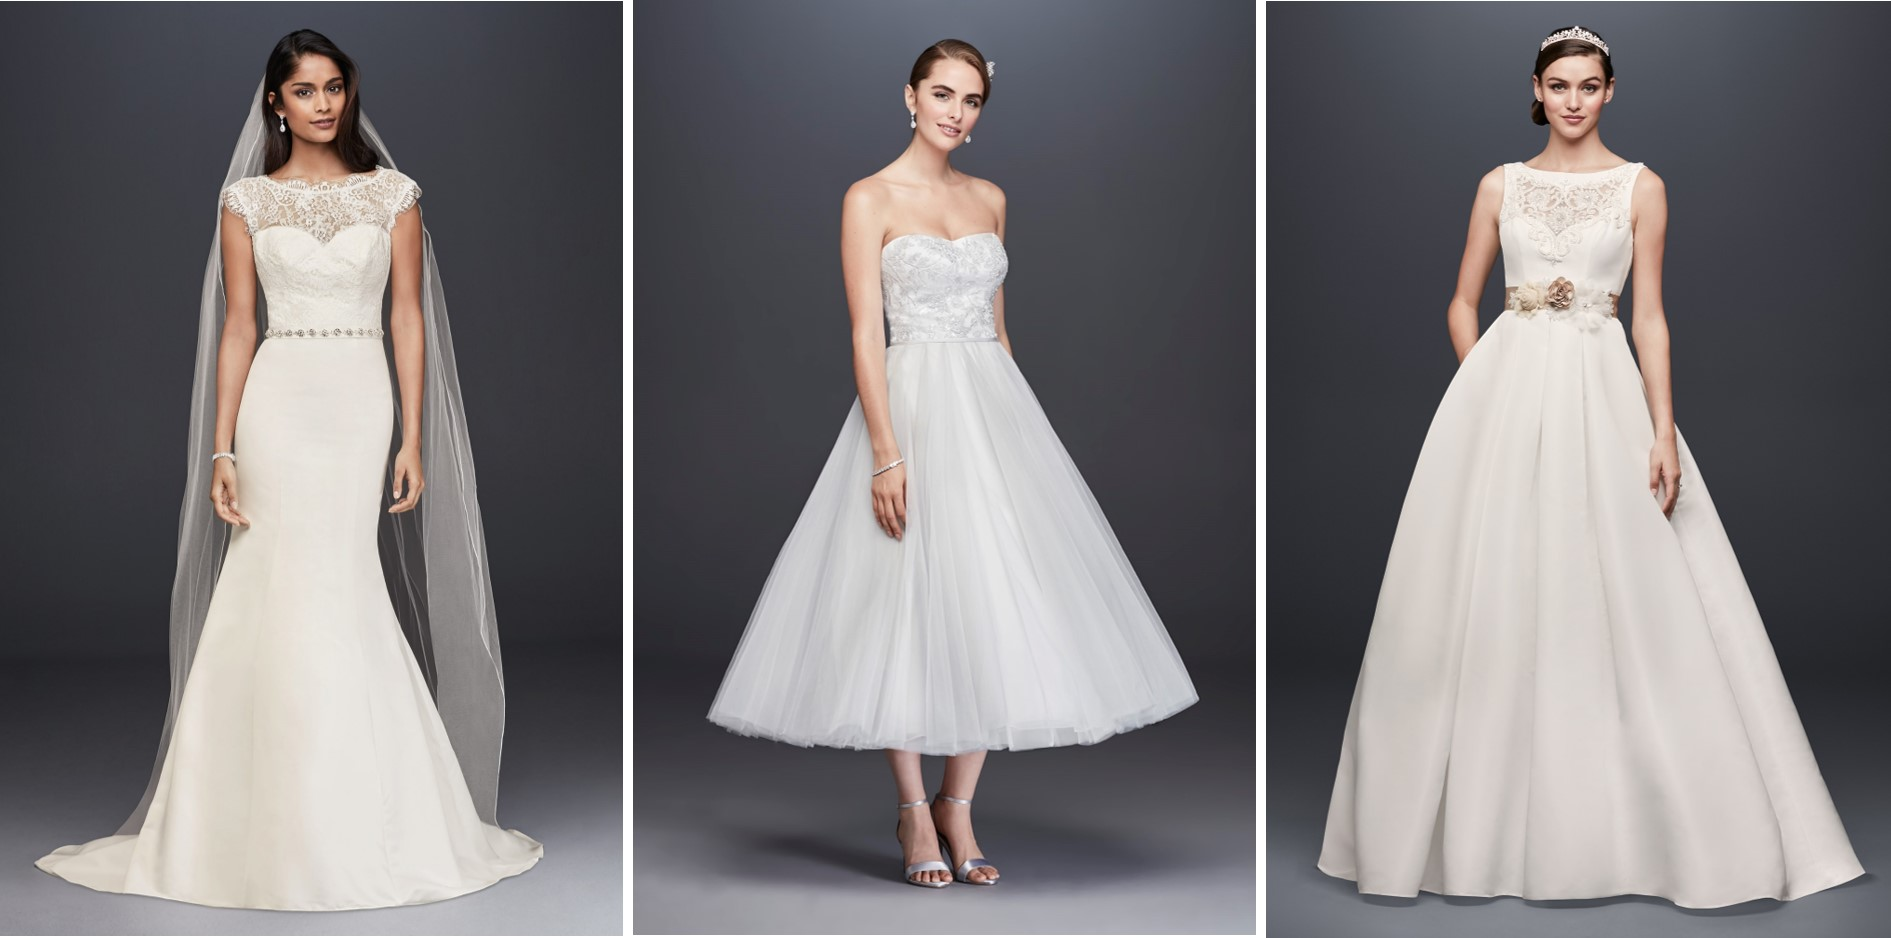 Three wedding dresses on sale during David's Bridal's President's Day Weekend Sale: a trumpet wedding dress with illusion lace neckline and cap sleeves, a strapless tea-length wedding dress with floral bodice and tulle skirt, and a boat neck ball gown with illusion lace neckline